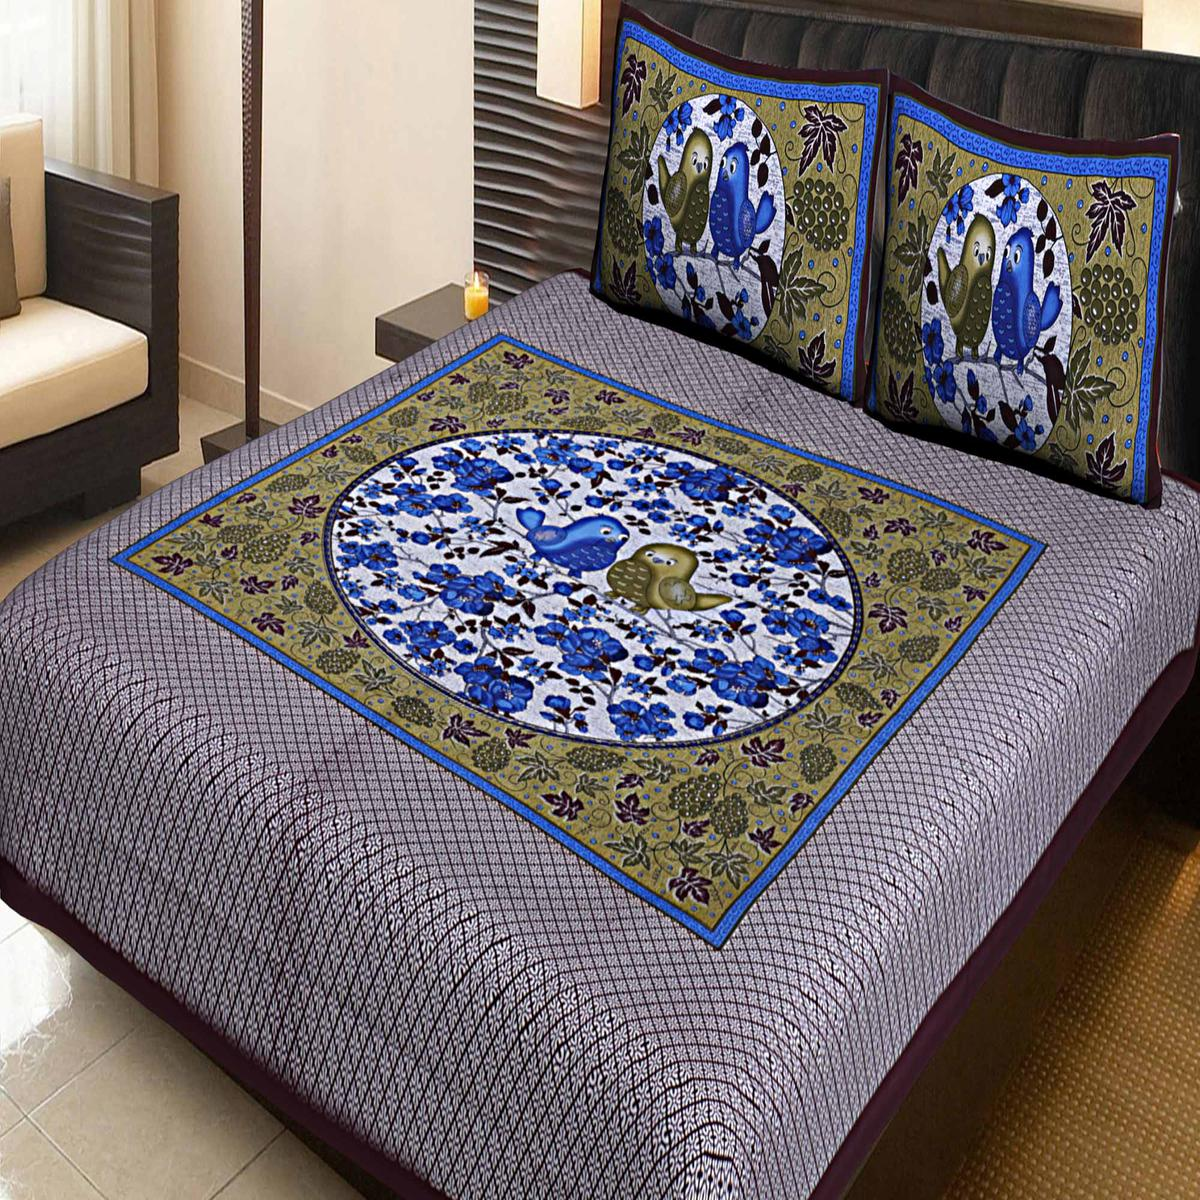 AJ Home - Brown Traditional Jaipuri 100% Cotton Double Bedsheet with 2 Pillow Covers